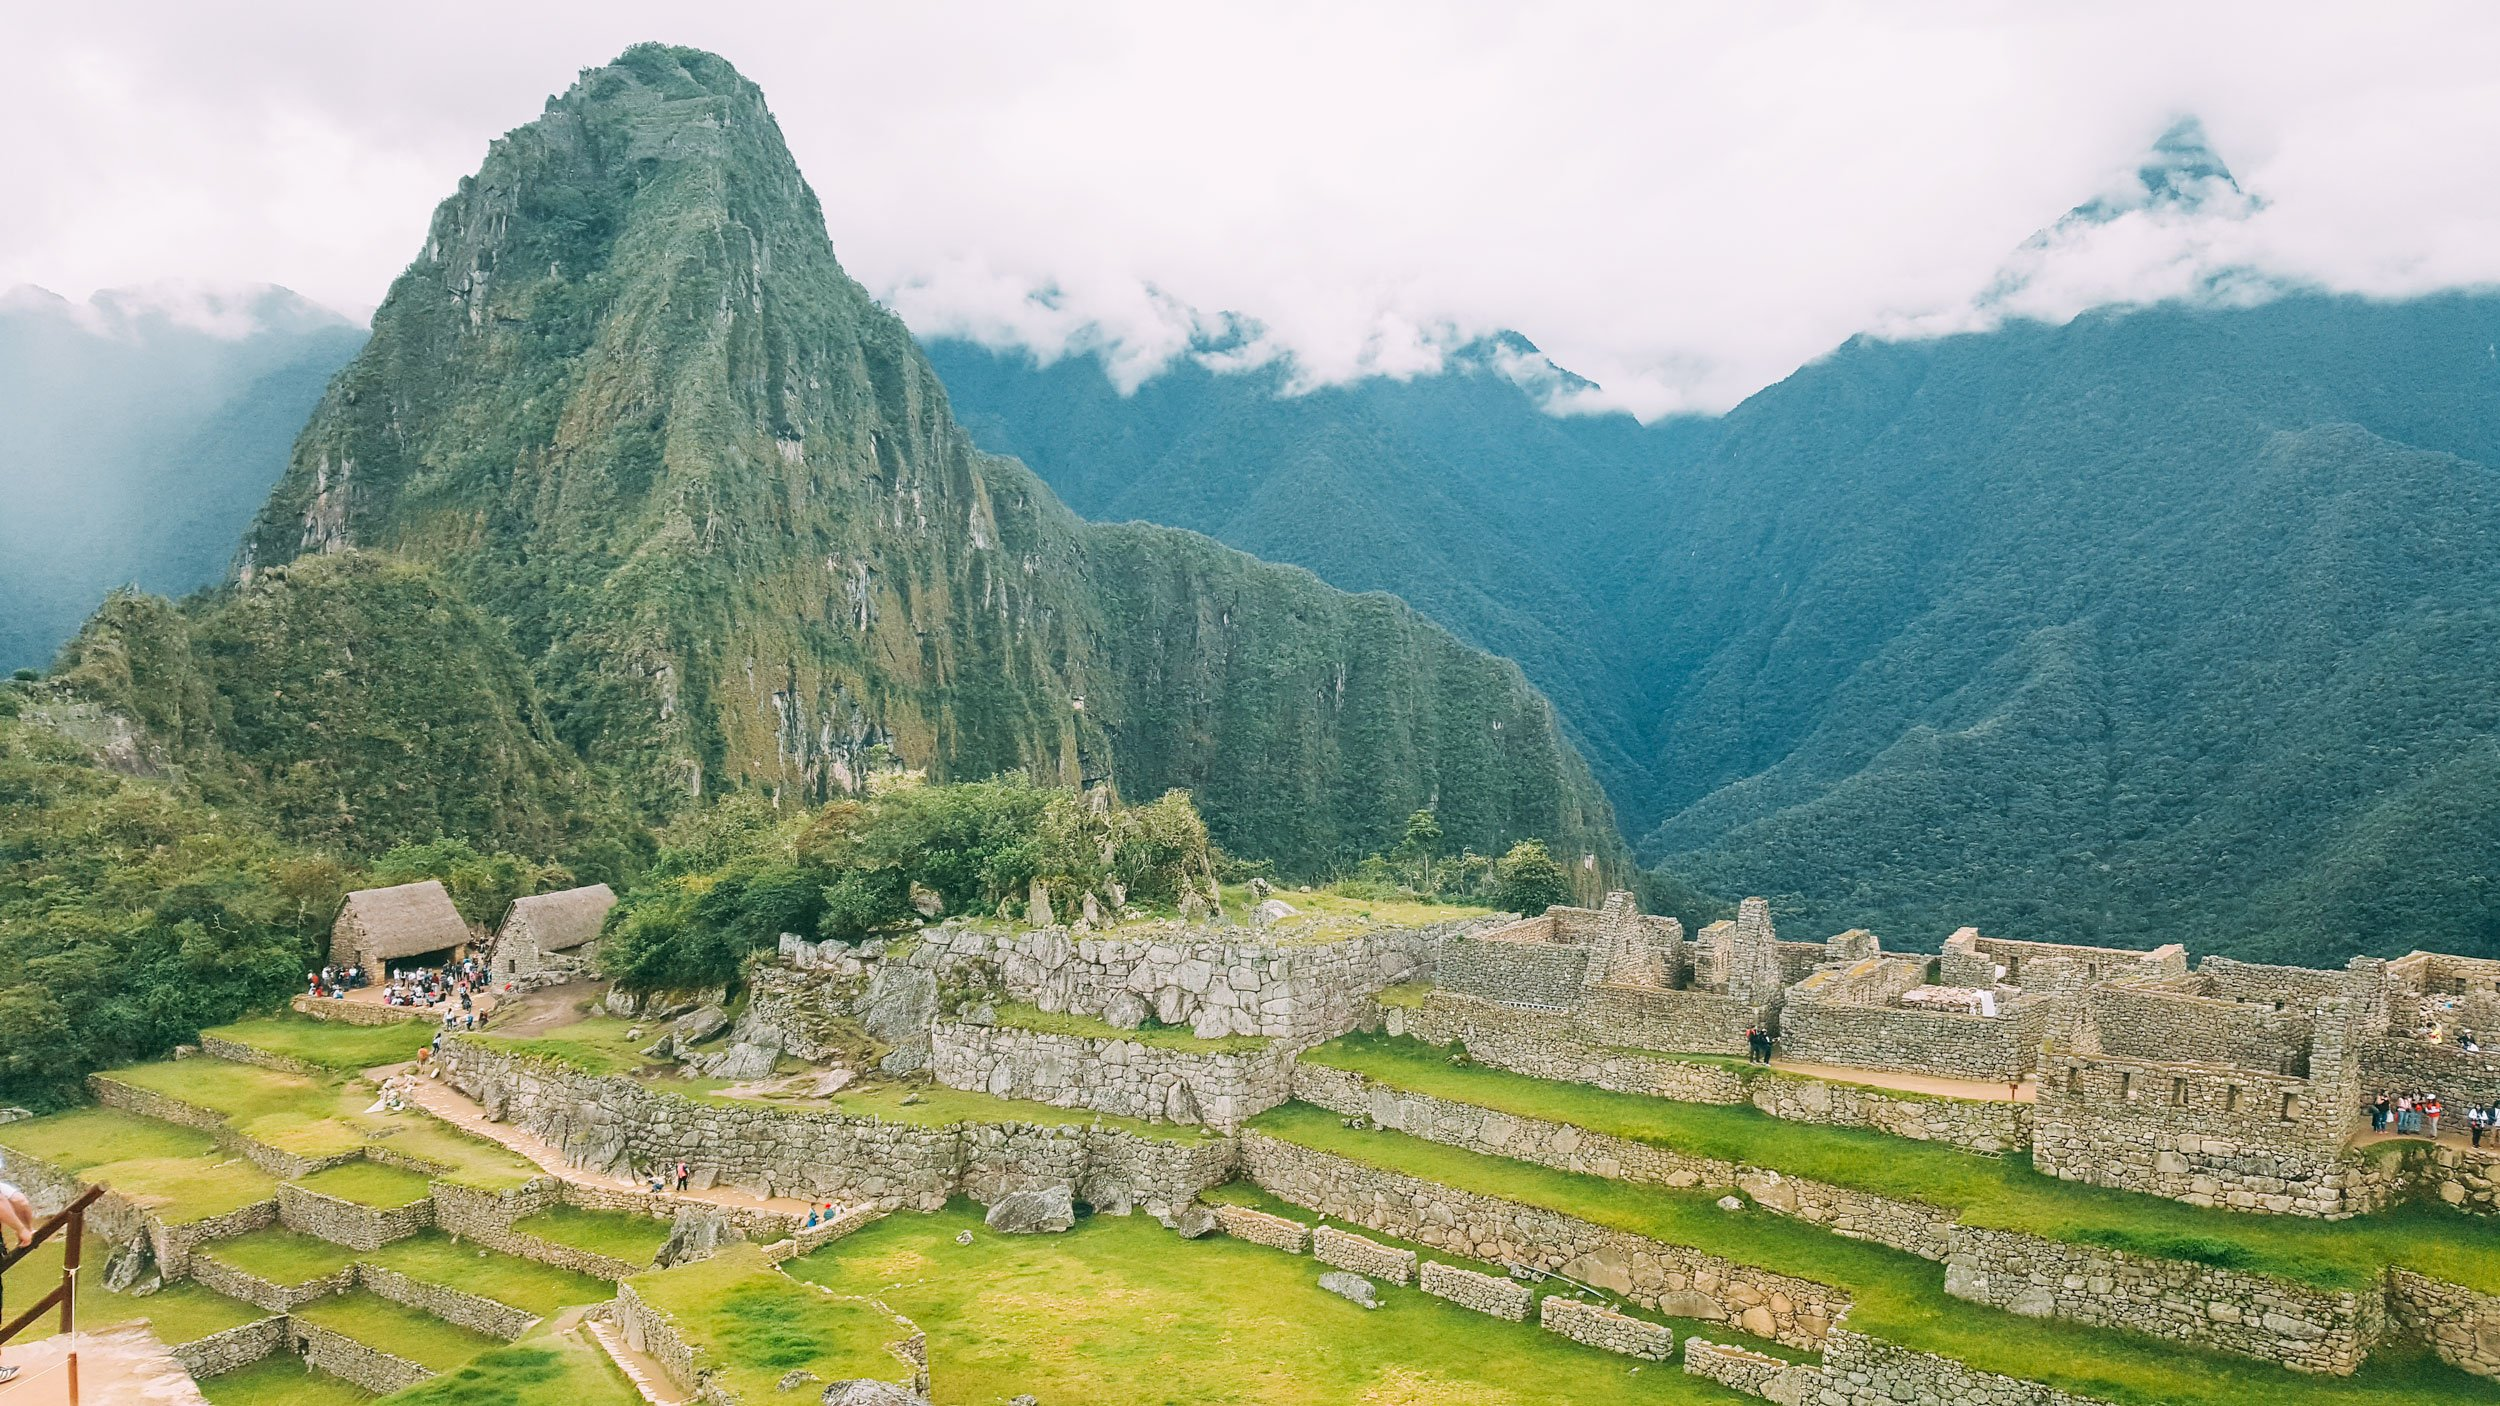 Hiking the Inca Trail to Machu Picchu is the kind of life changing experience that can form the pinnacle of a RTW Trip | What is a RTW Trip?